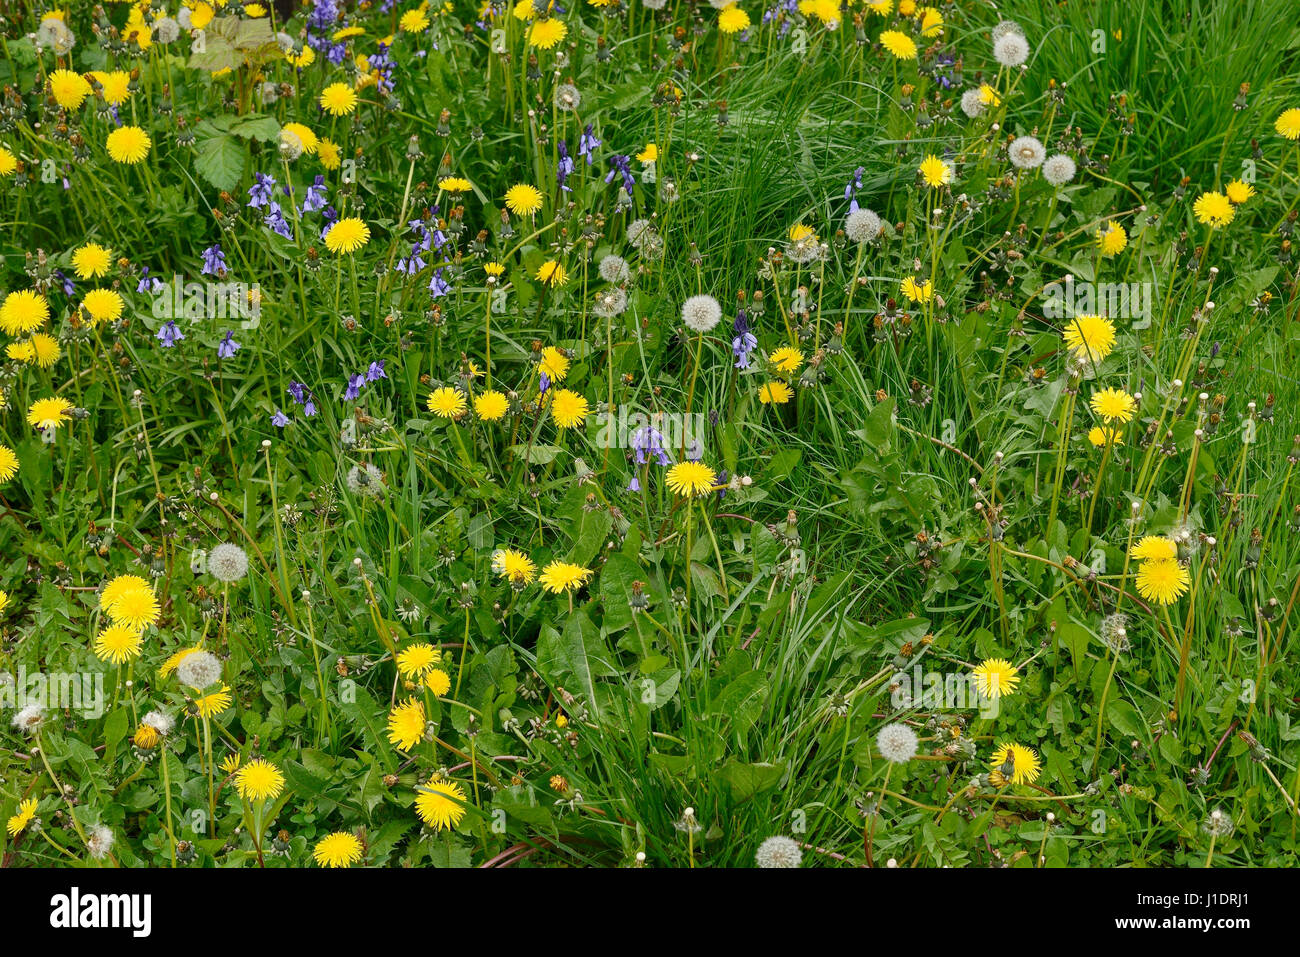 wild garden weeds stock photos u0026 wild garden weeds stock images